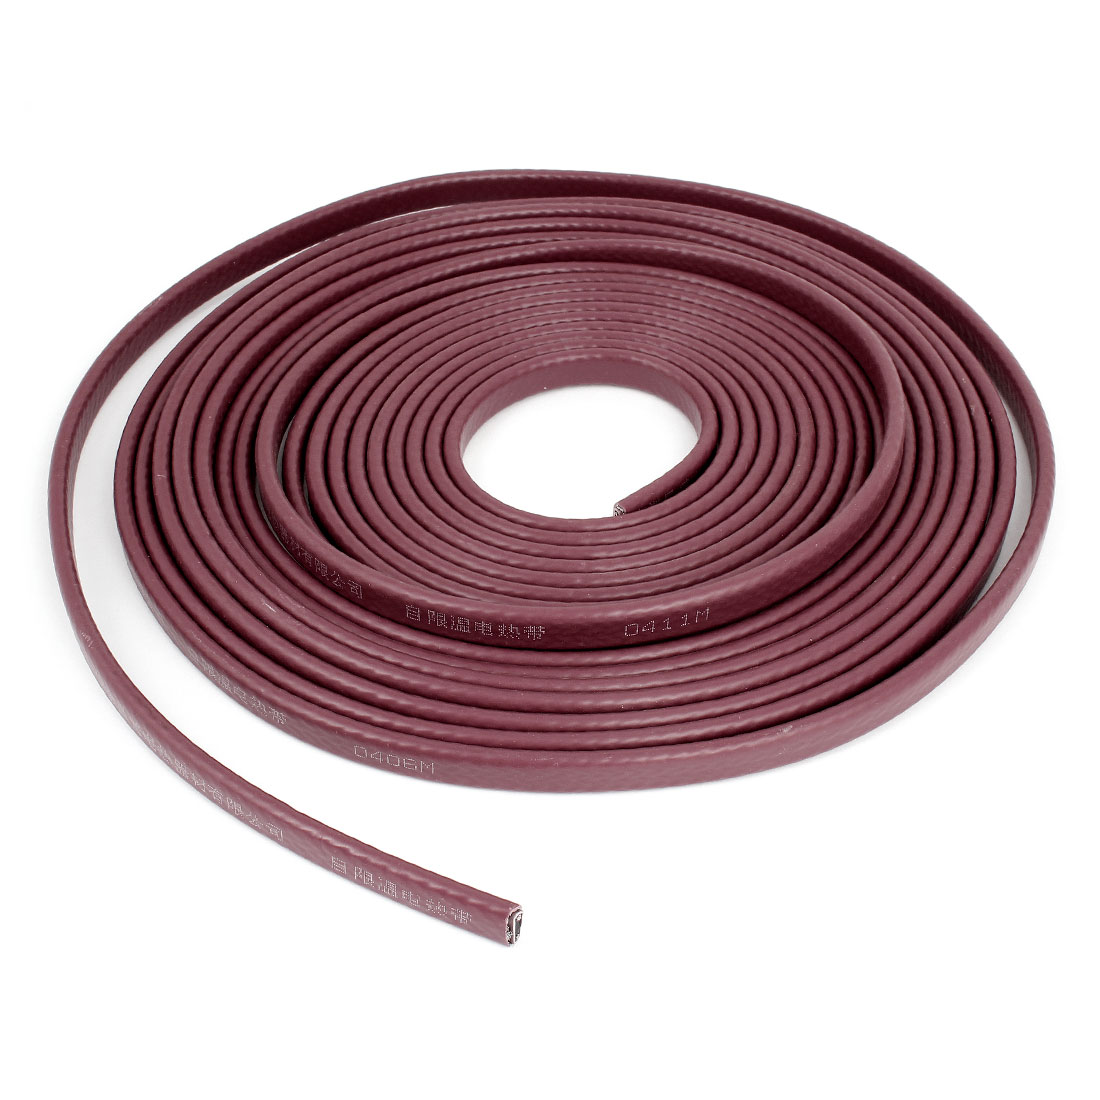 Brick Red Corrosion Prevention Waterproof Heating Cable 220V 10M x 13mm